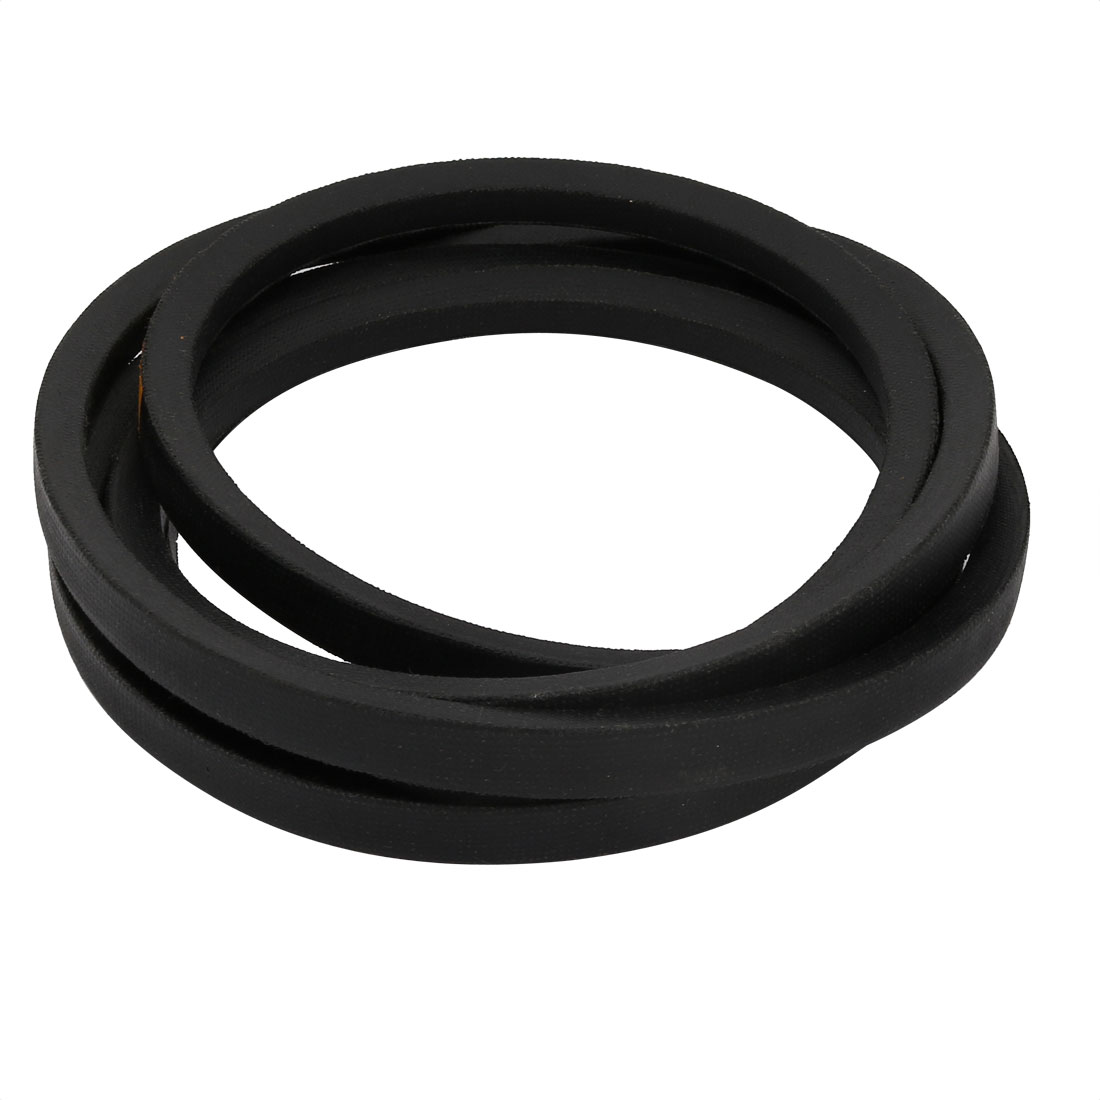 A2200 13mm Width 8mm Thickness Rubber High Strength Transmission Drive V-Belt